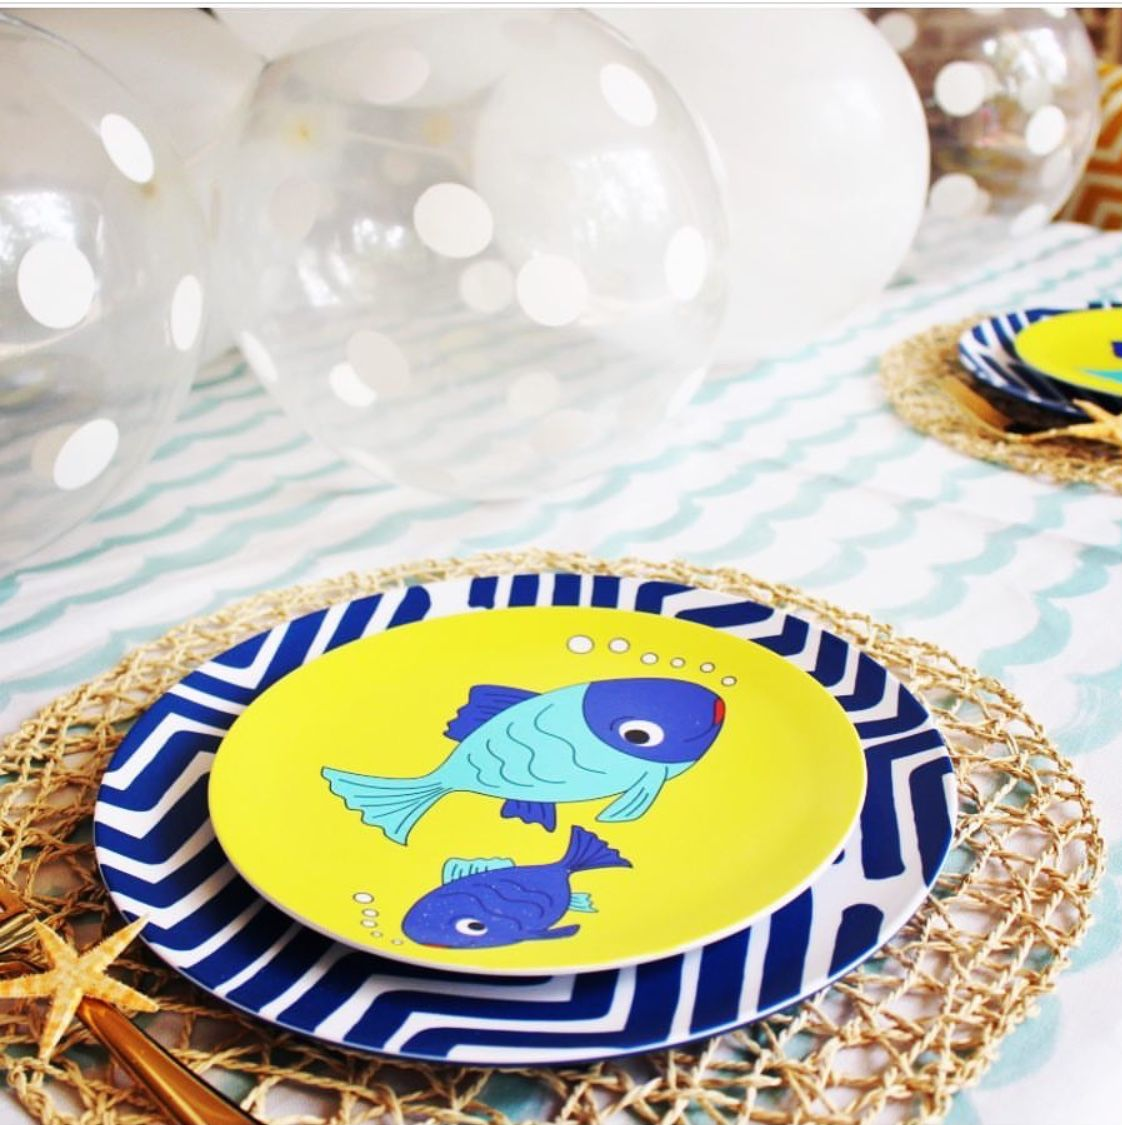 A fun plate for every kid. Melamine Plate. Dishwasher safe. plateshoppe.com & A fun plate for every kid. Melamine Plate. Dishwasher safe ...